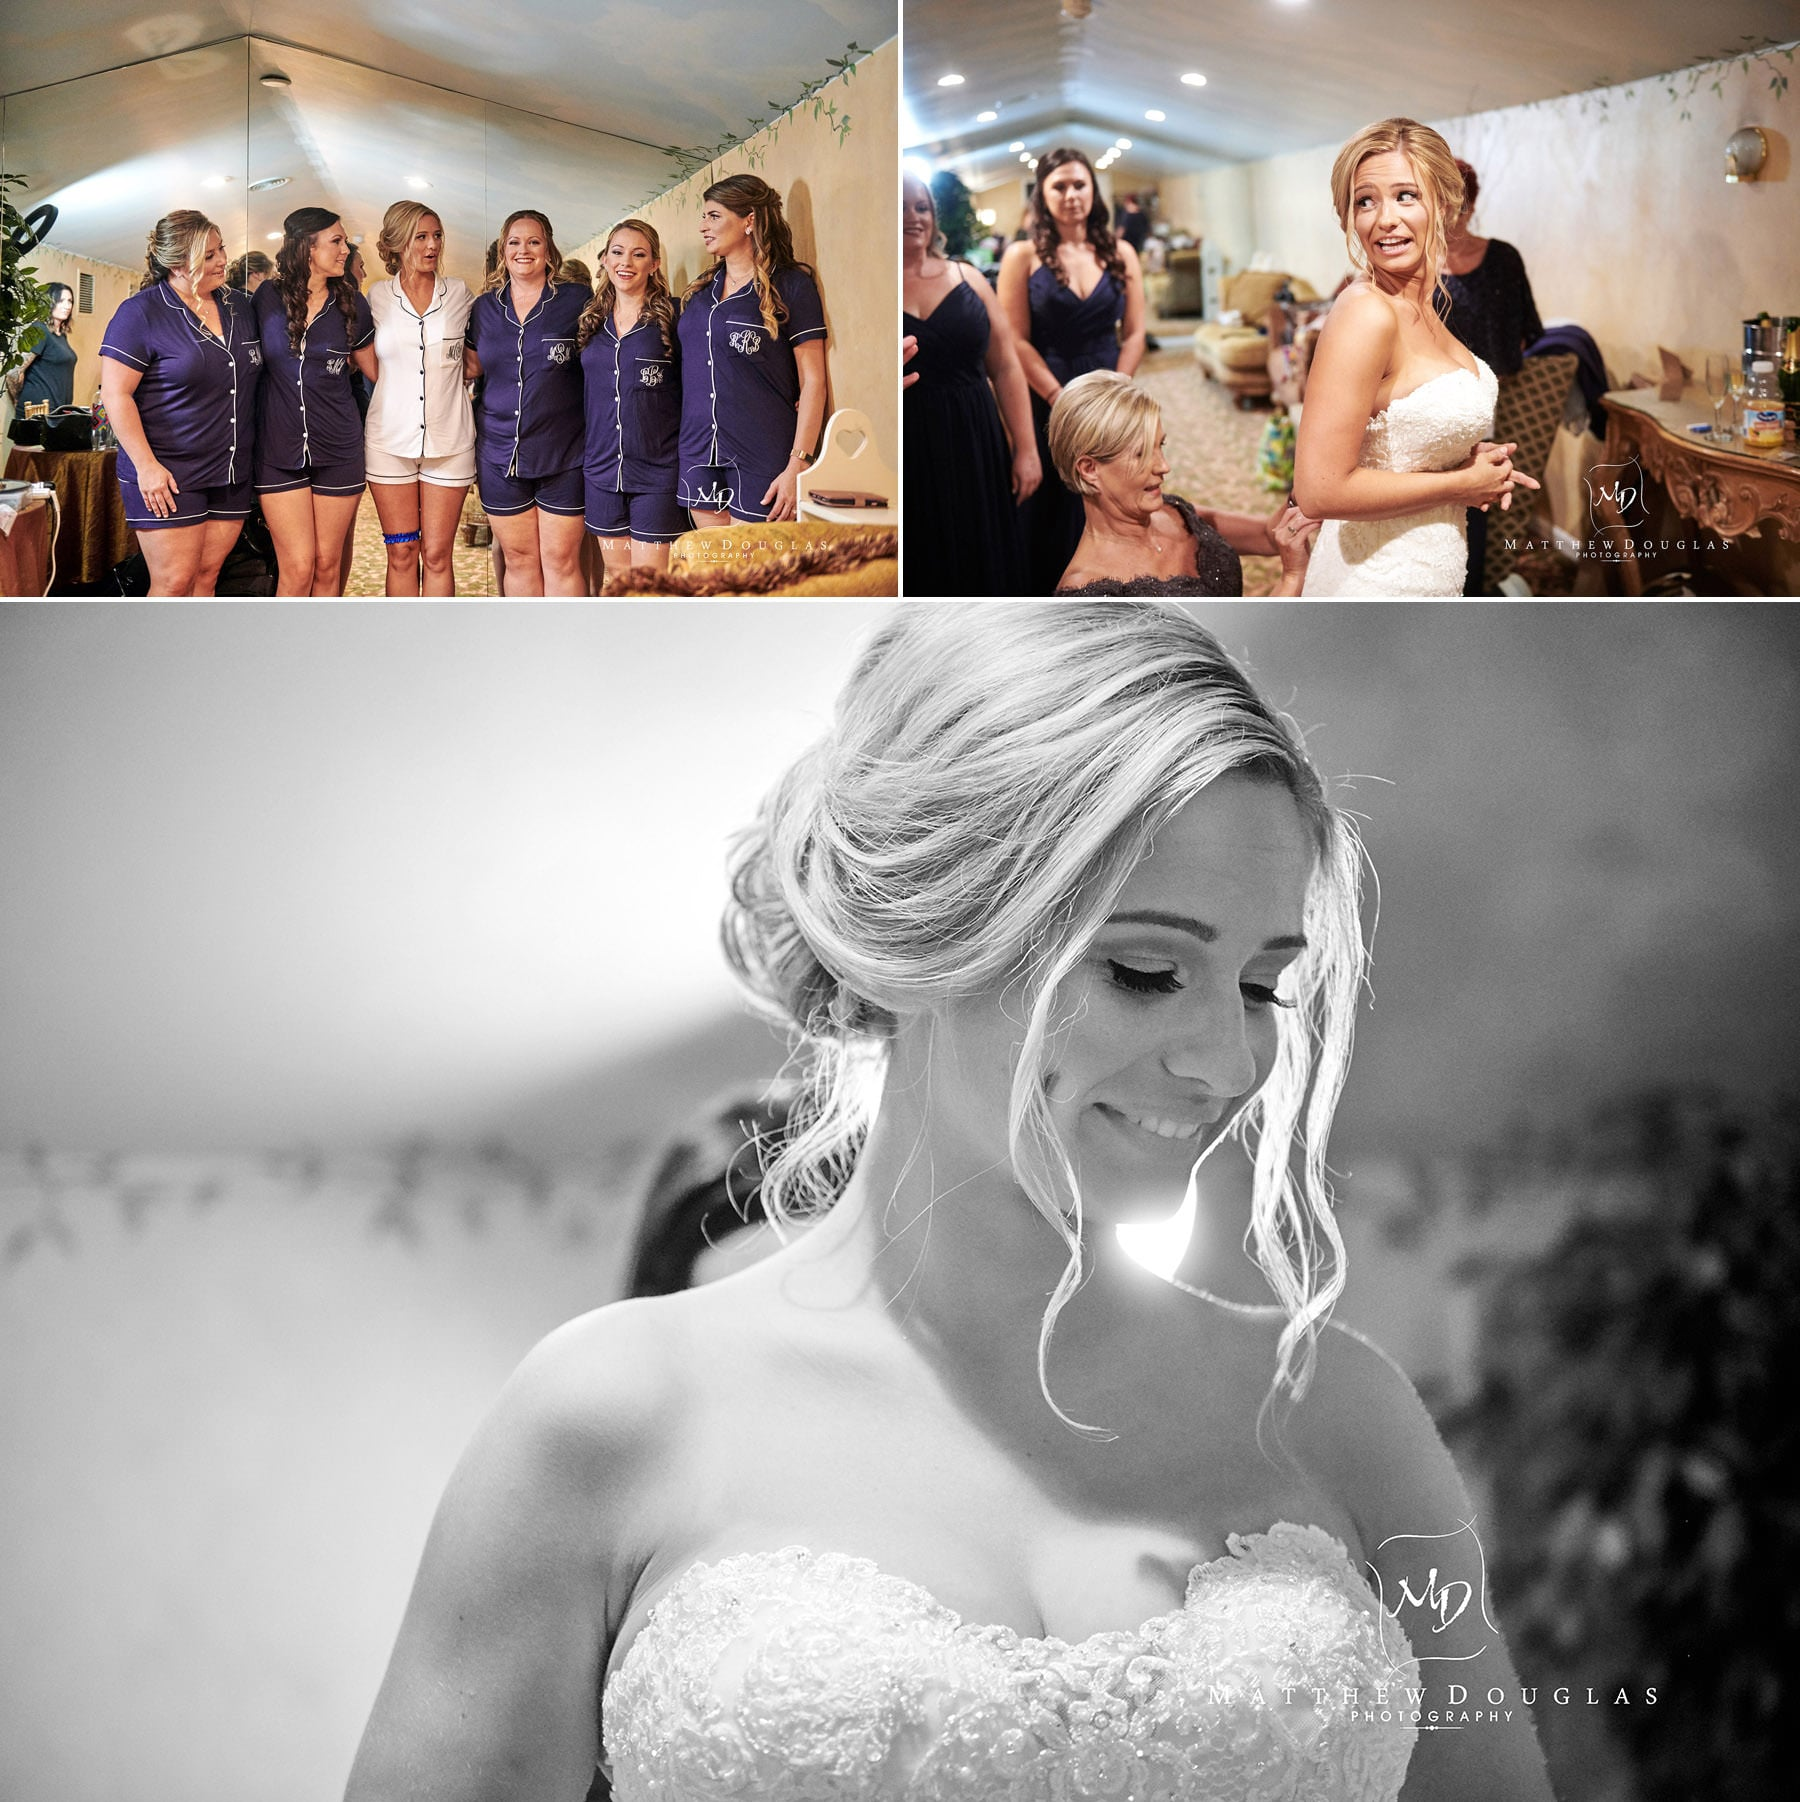 Chandelier Flanders Valley Wedding bridesmaids